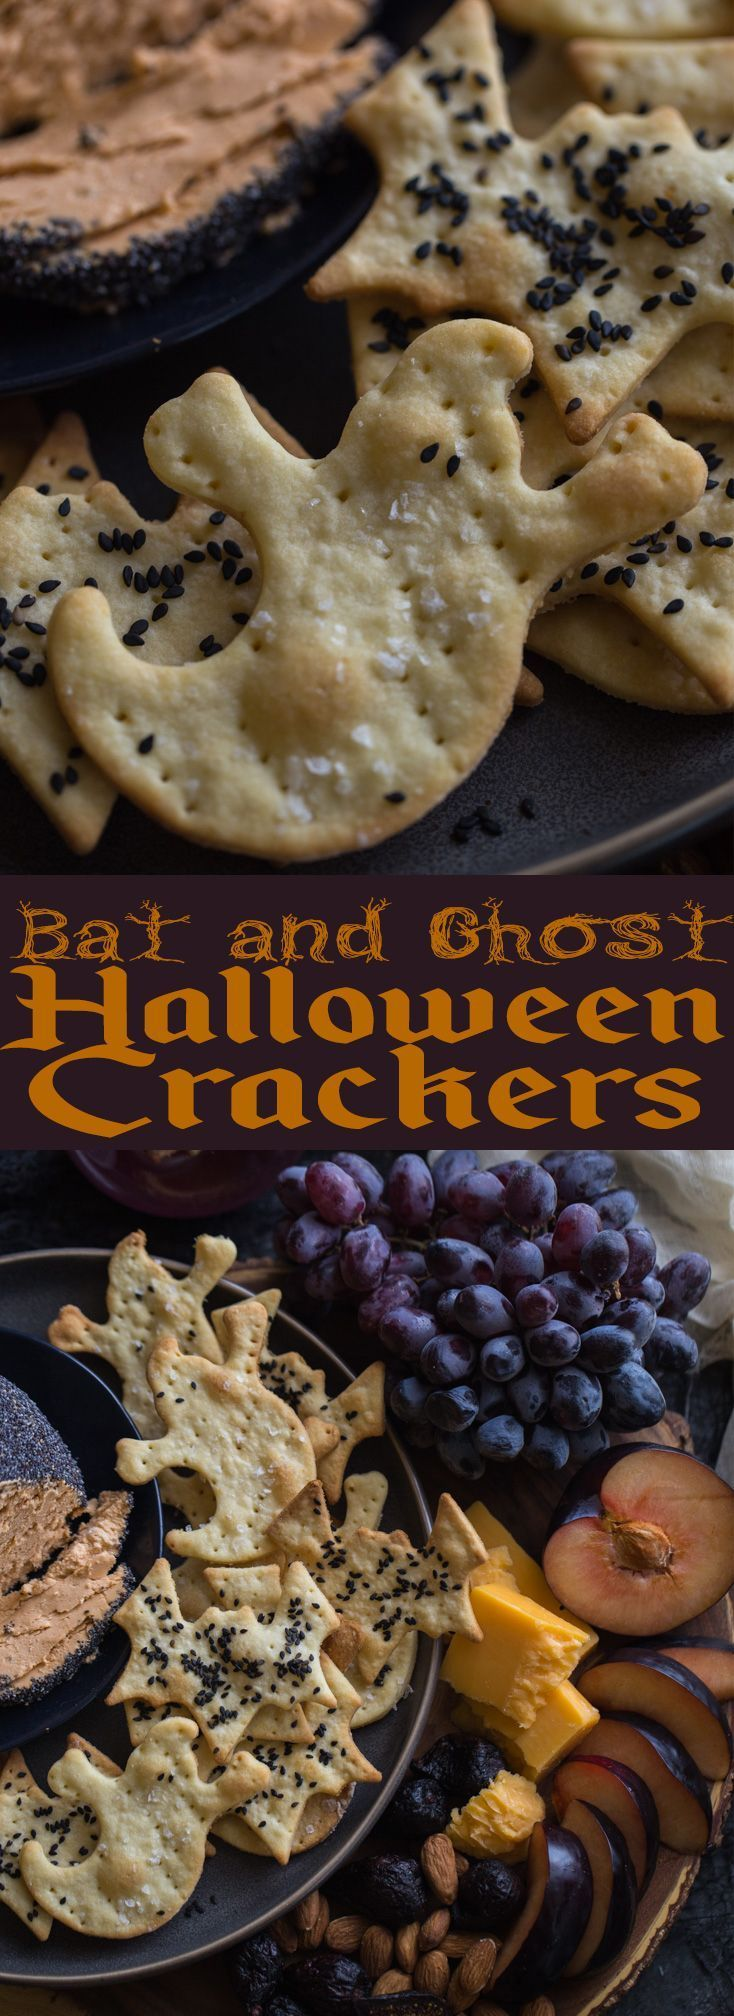 Bat and Ghost Halloween Crackers | Halloween Appetizers | Grown up Halloween ideas | Classy Halloween party | Not gross Halloween foods | Parmesan crackers